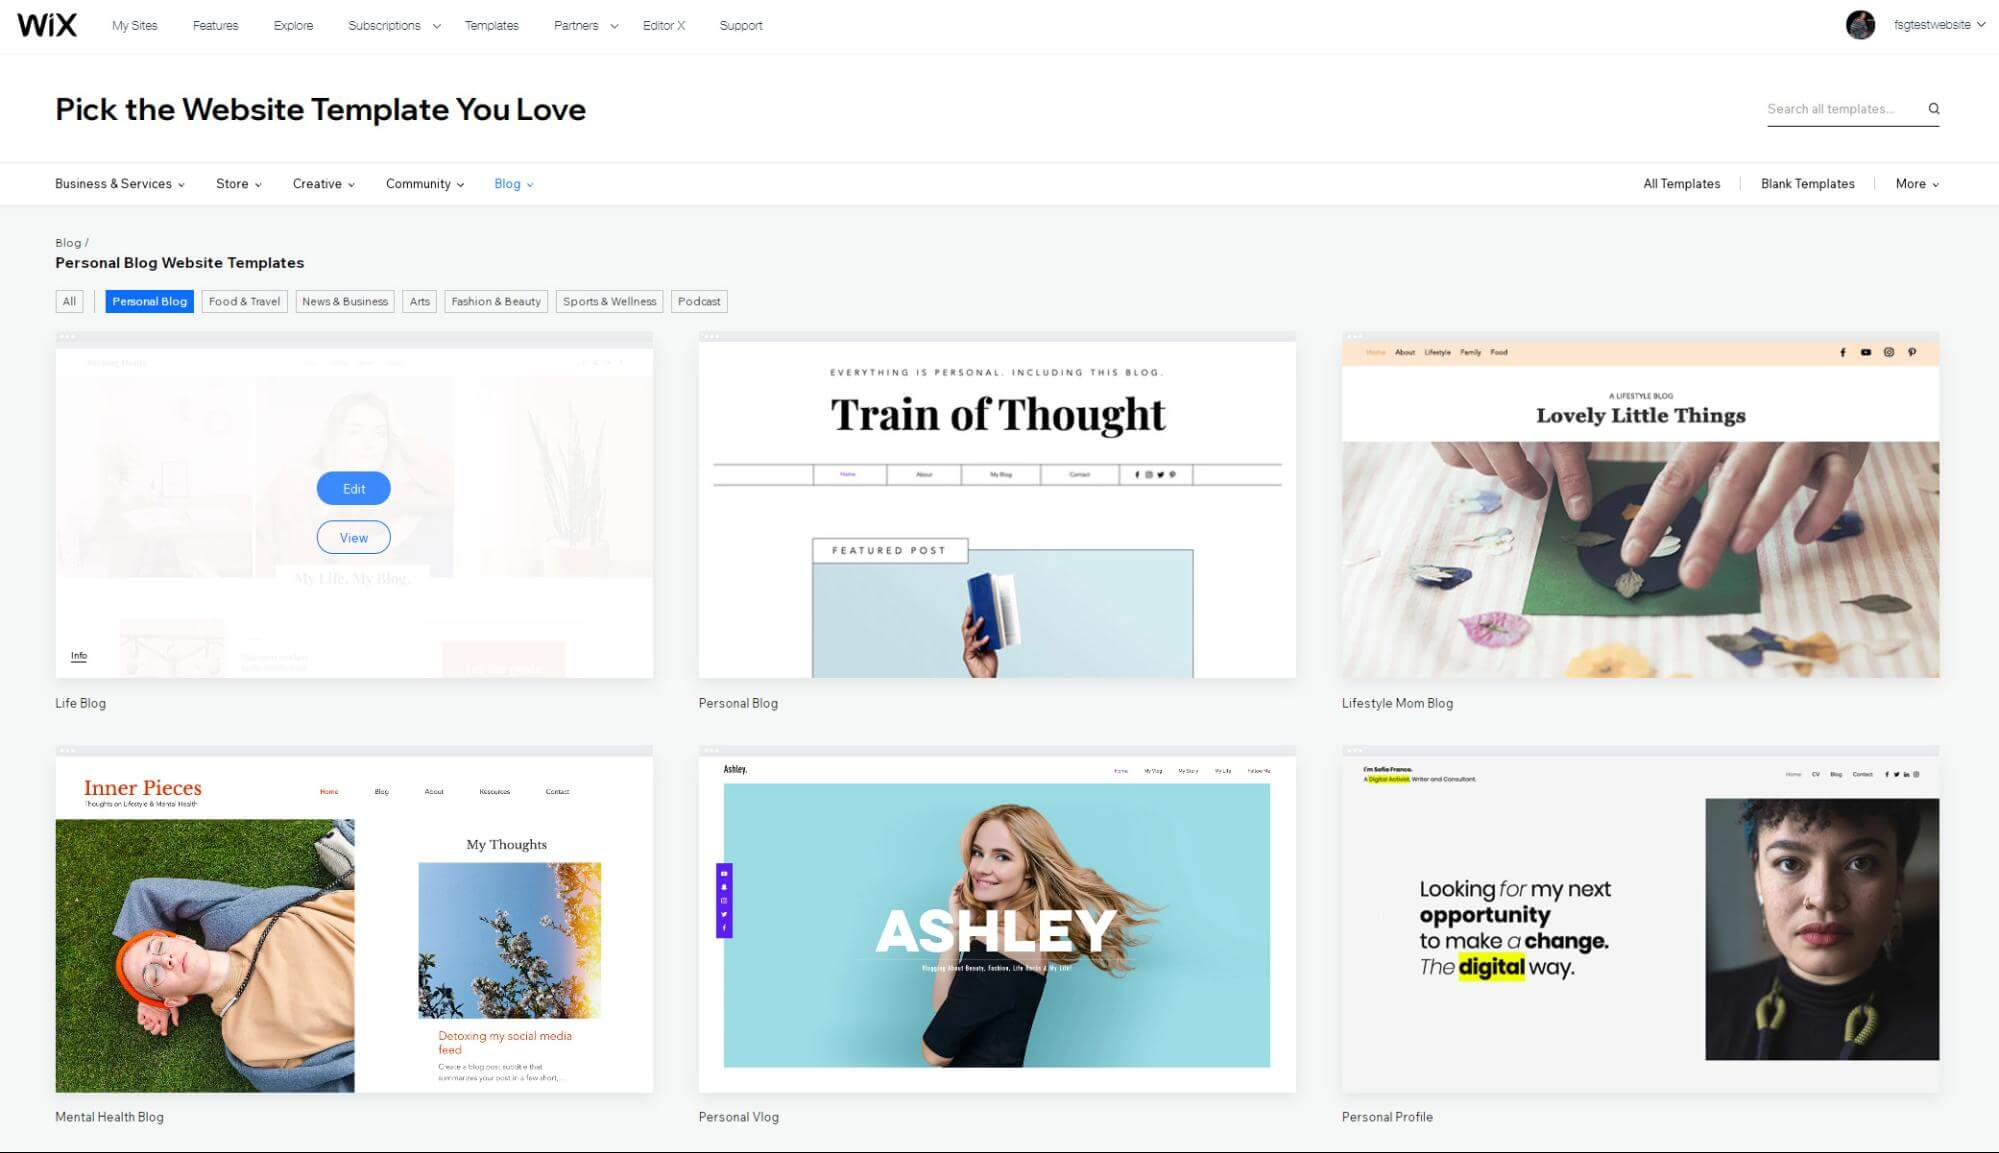 Pick the website template